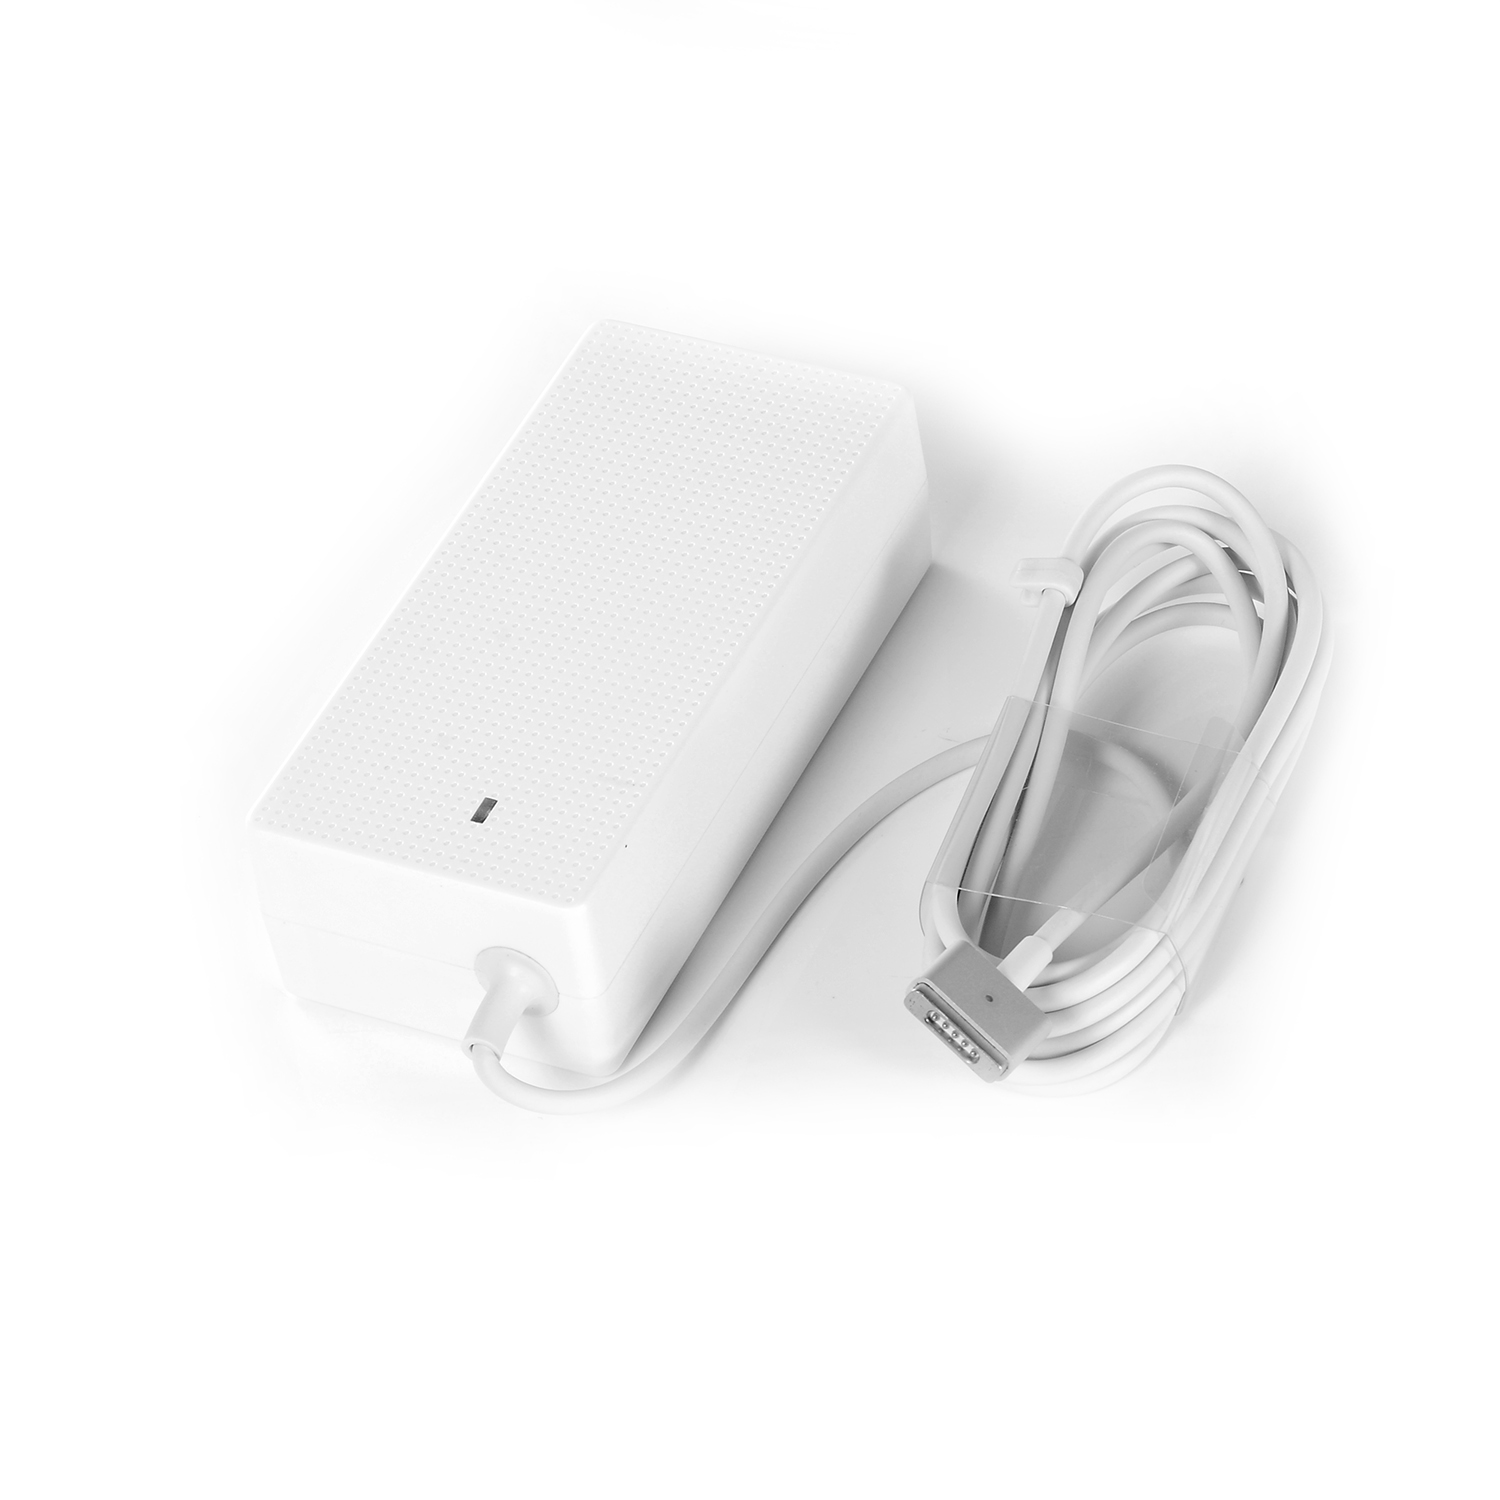 macbook pro magsafe 2 t tip charger